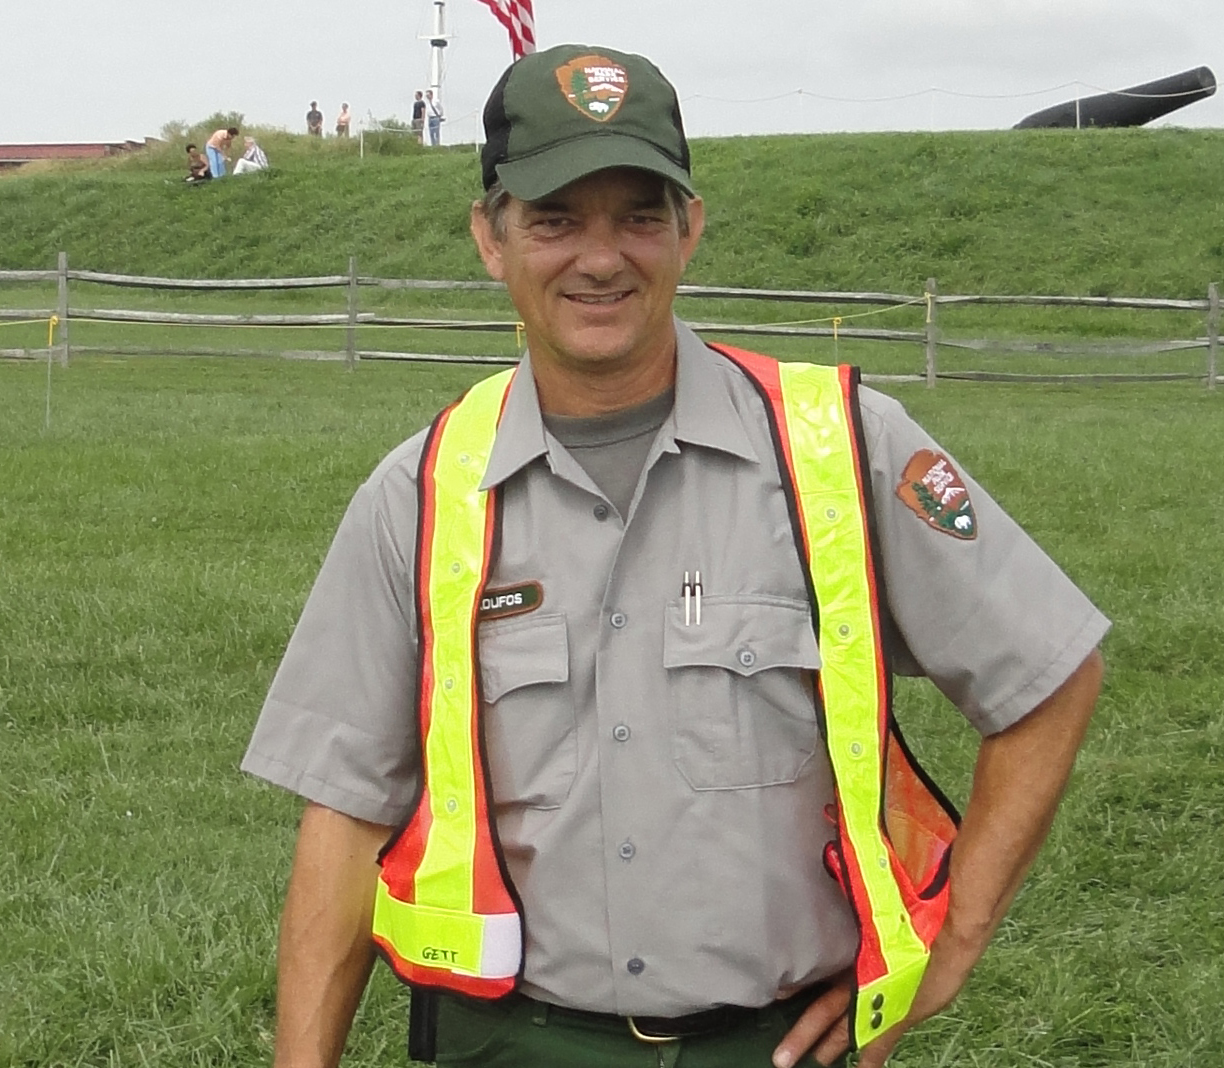 Dan Skoufos wearing the NPS maintenance uniform and orange vest.